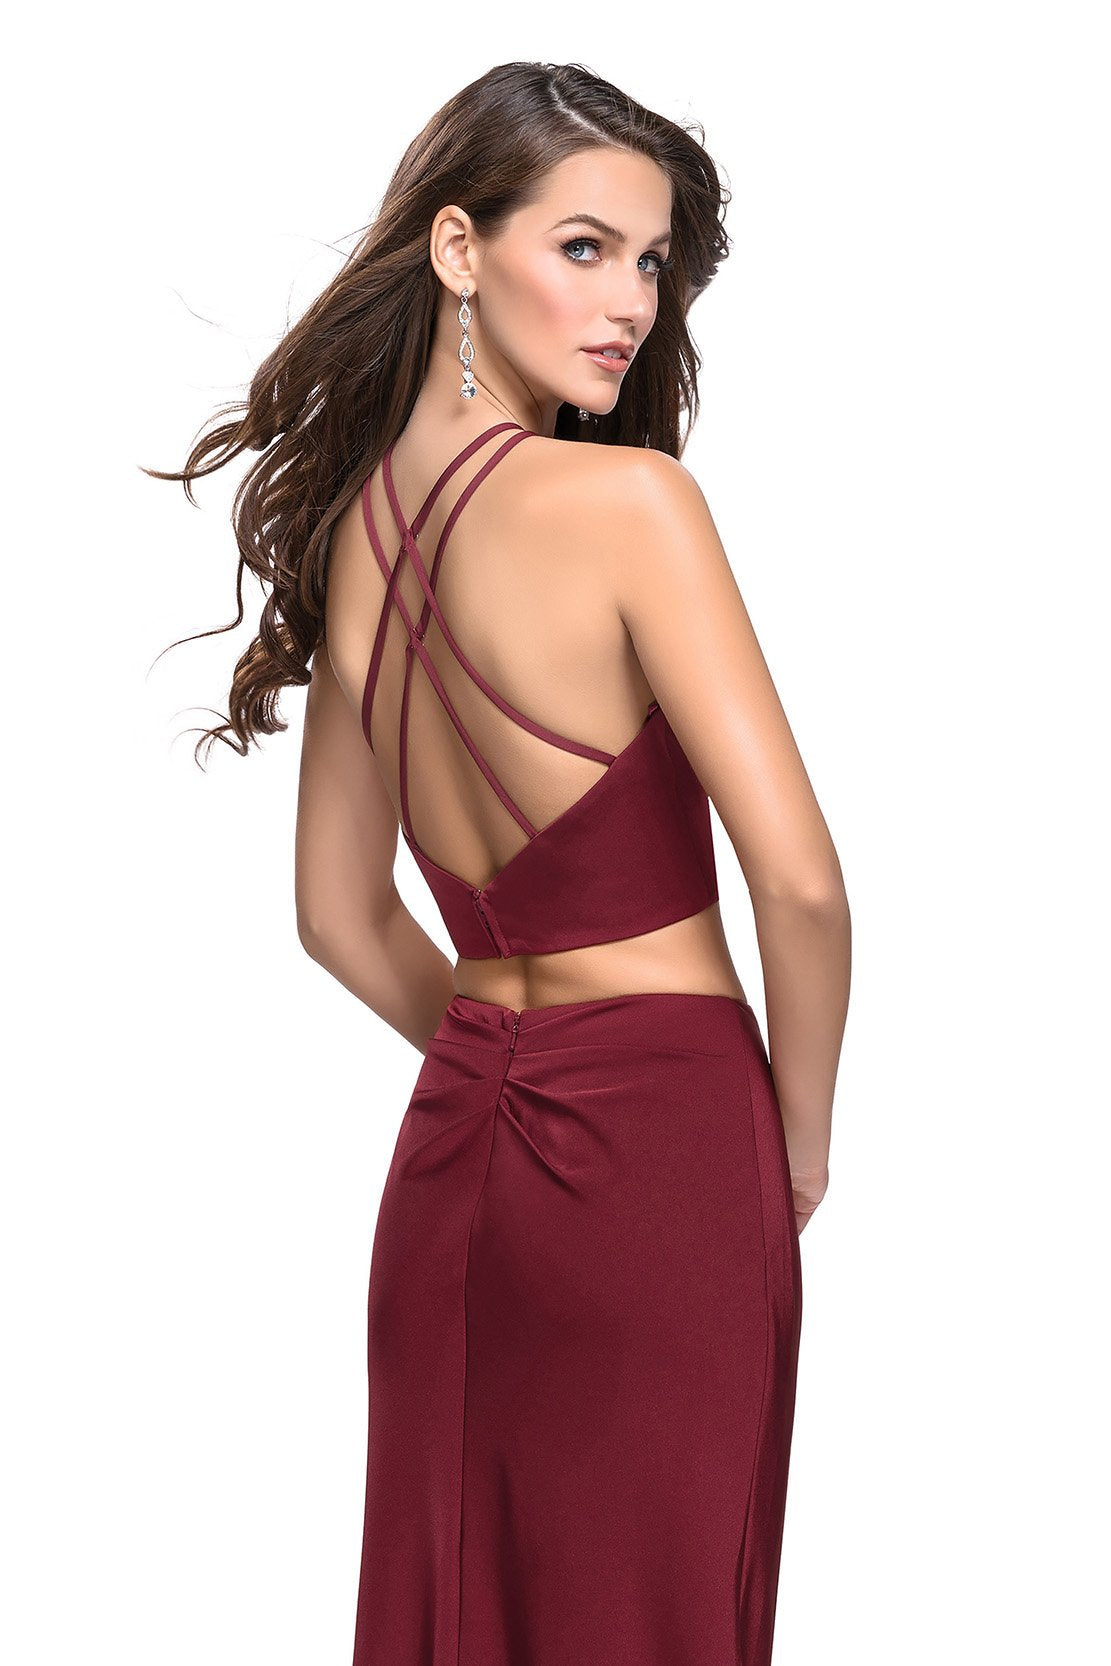 La Femme - Two Piece Deep V-neck Ruched Sheath Dress 25731 In Red